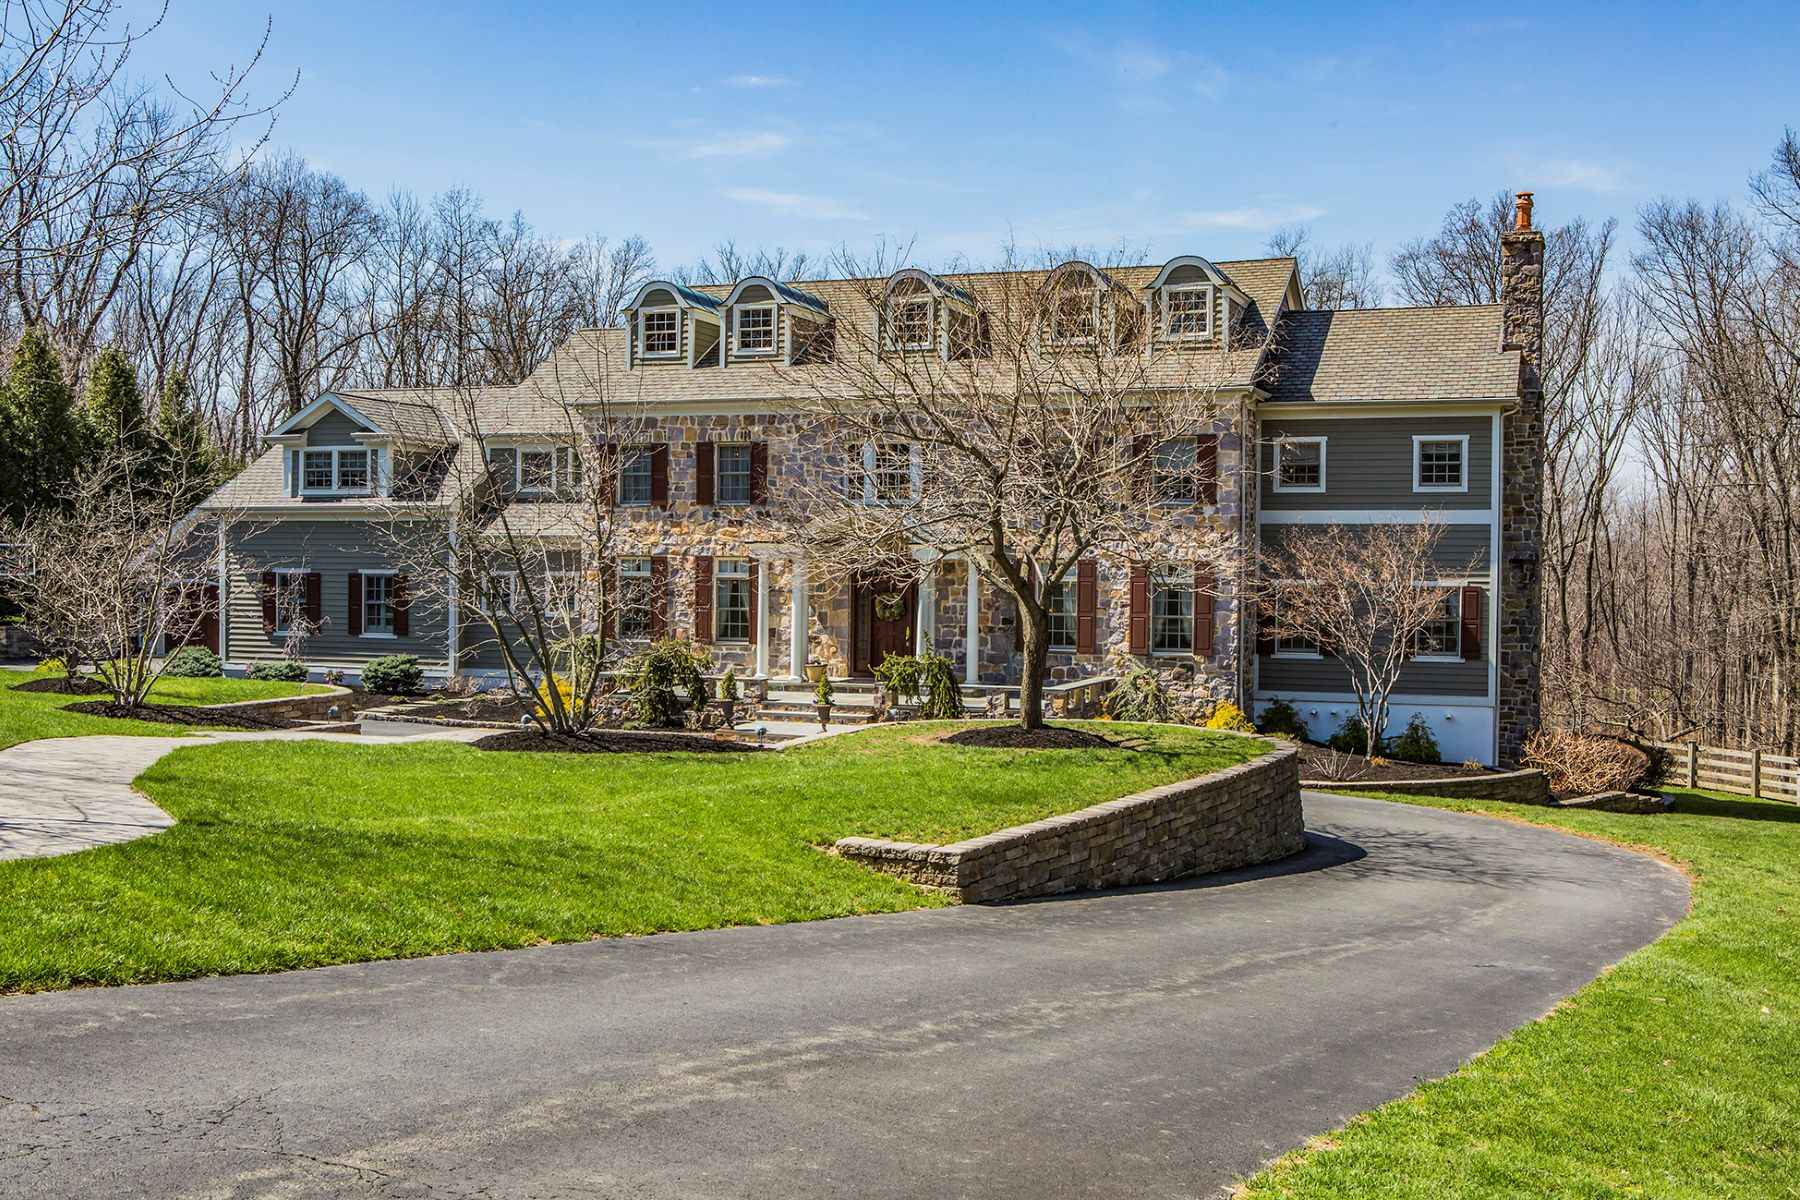 Additional photo for property listing at Elegant Design And The Finest Craftsmanship 6 Stout Road, Princeton, New Jersey 08540 United States